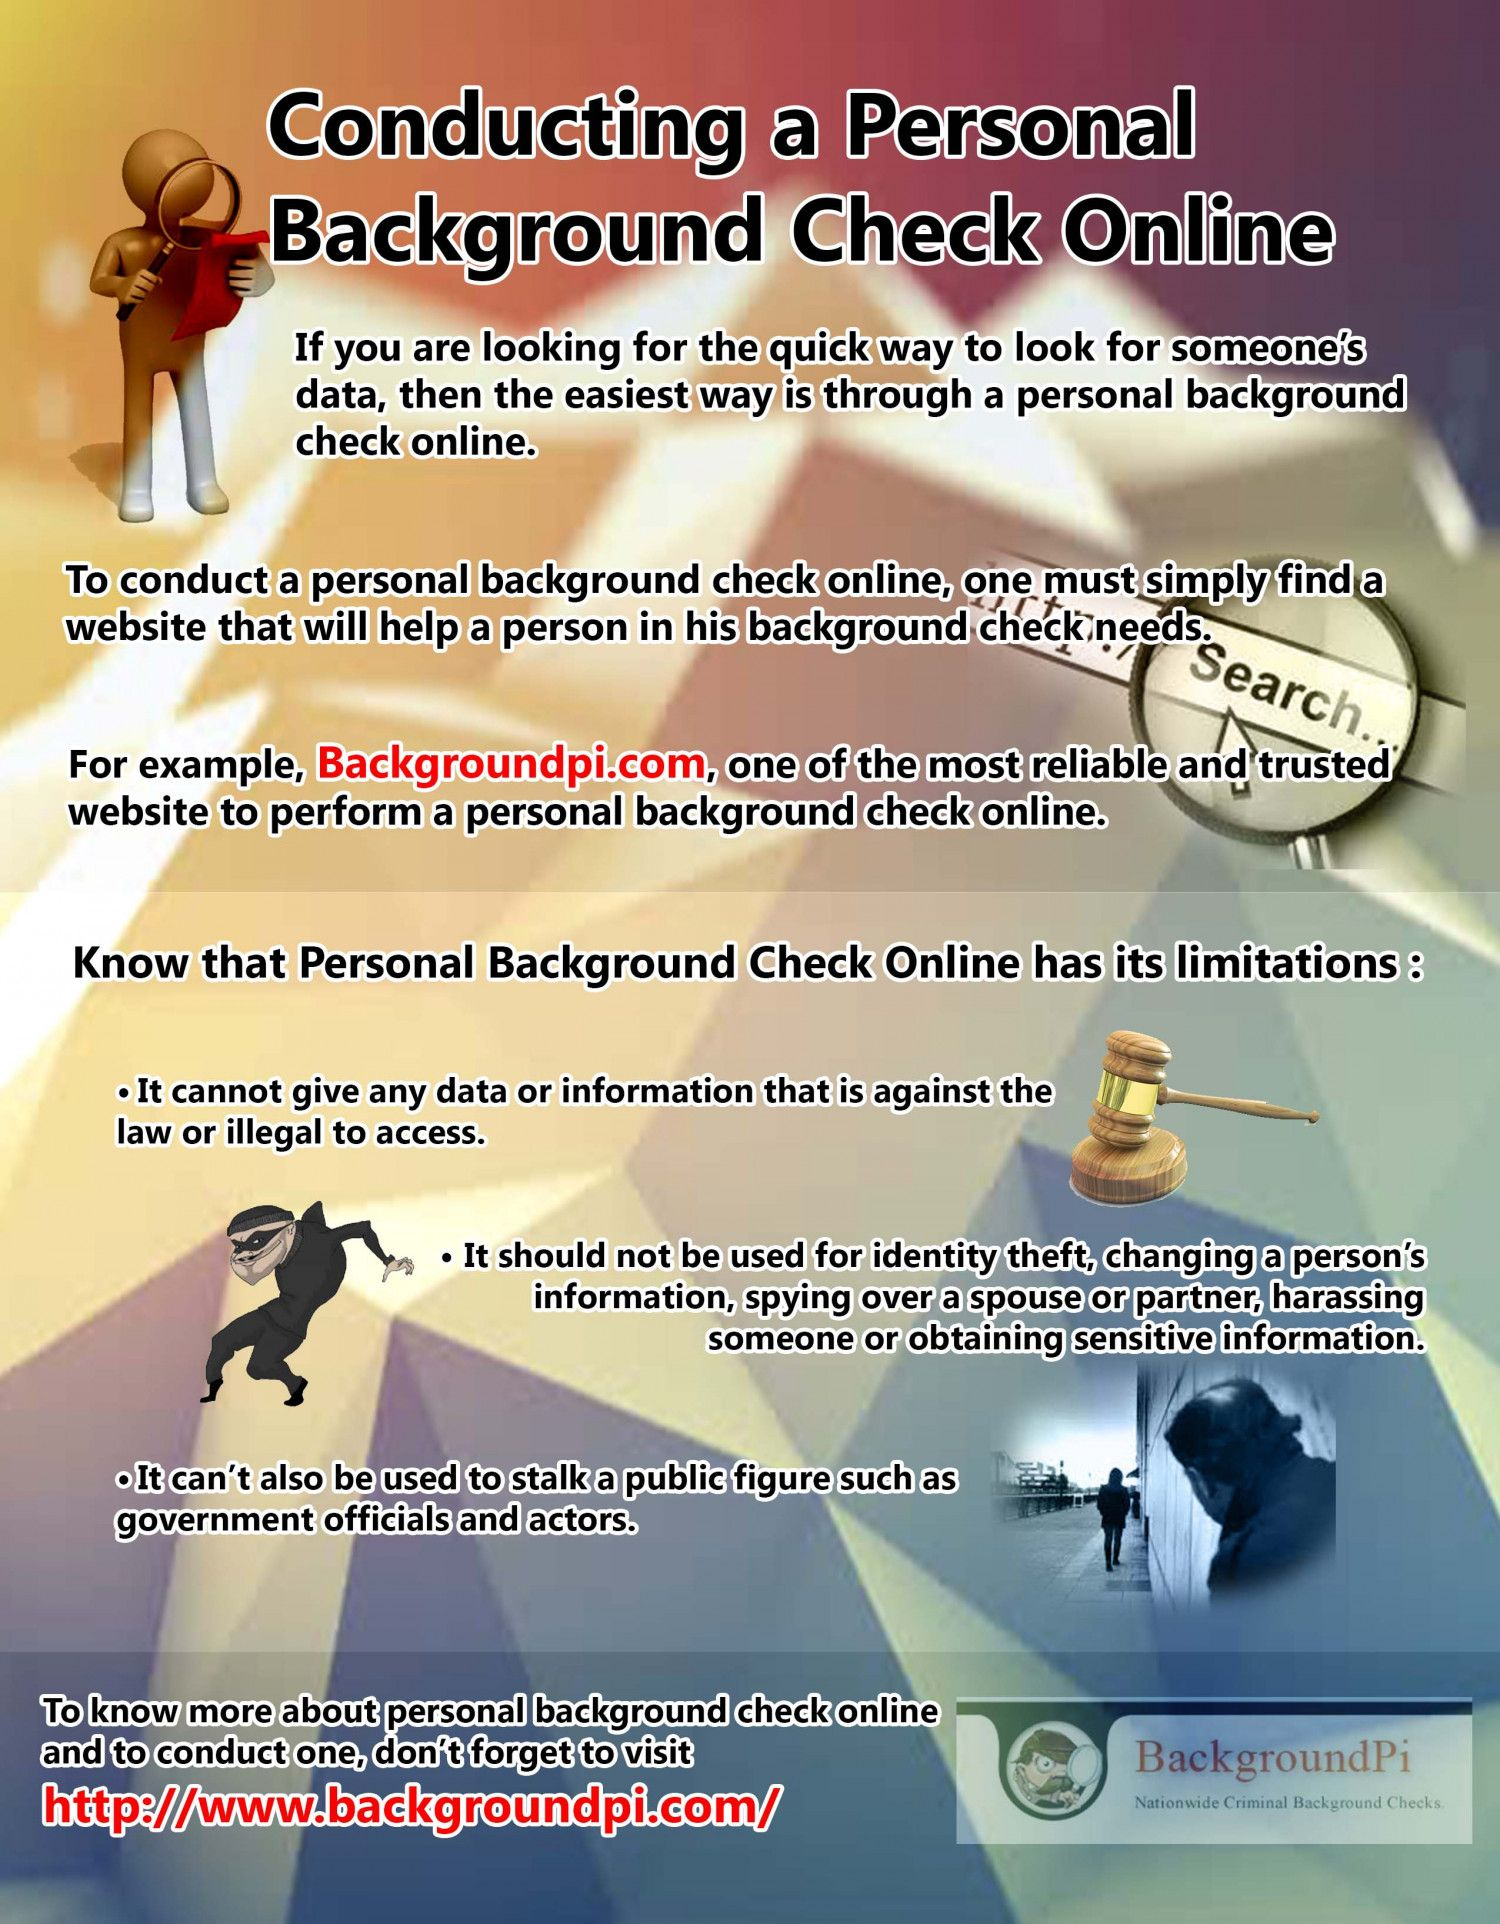 To Know More About Personal Background Check Online And To Conduct